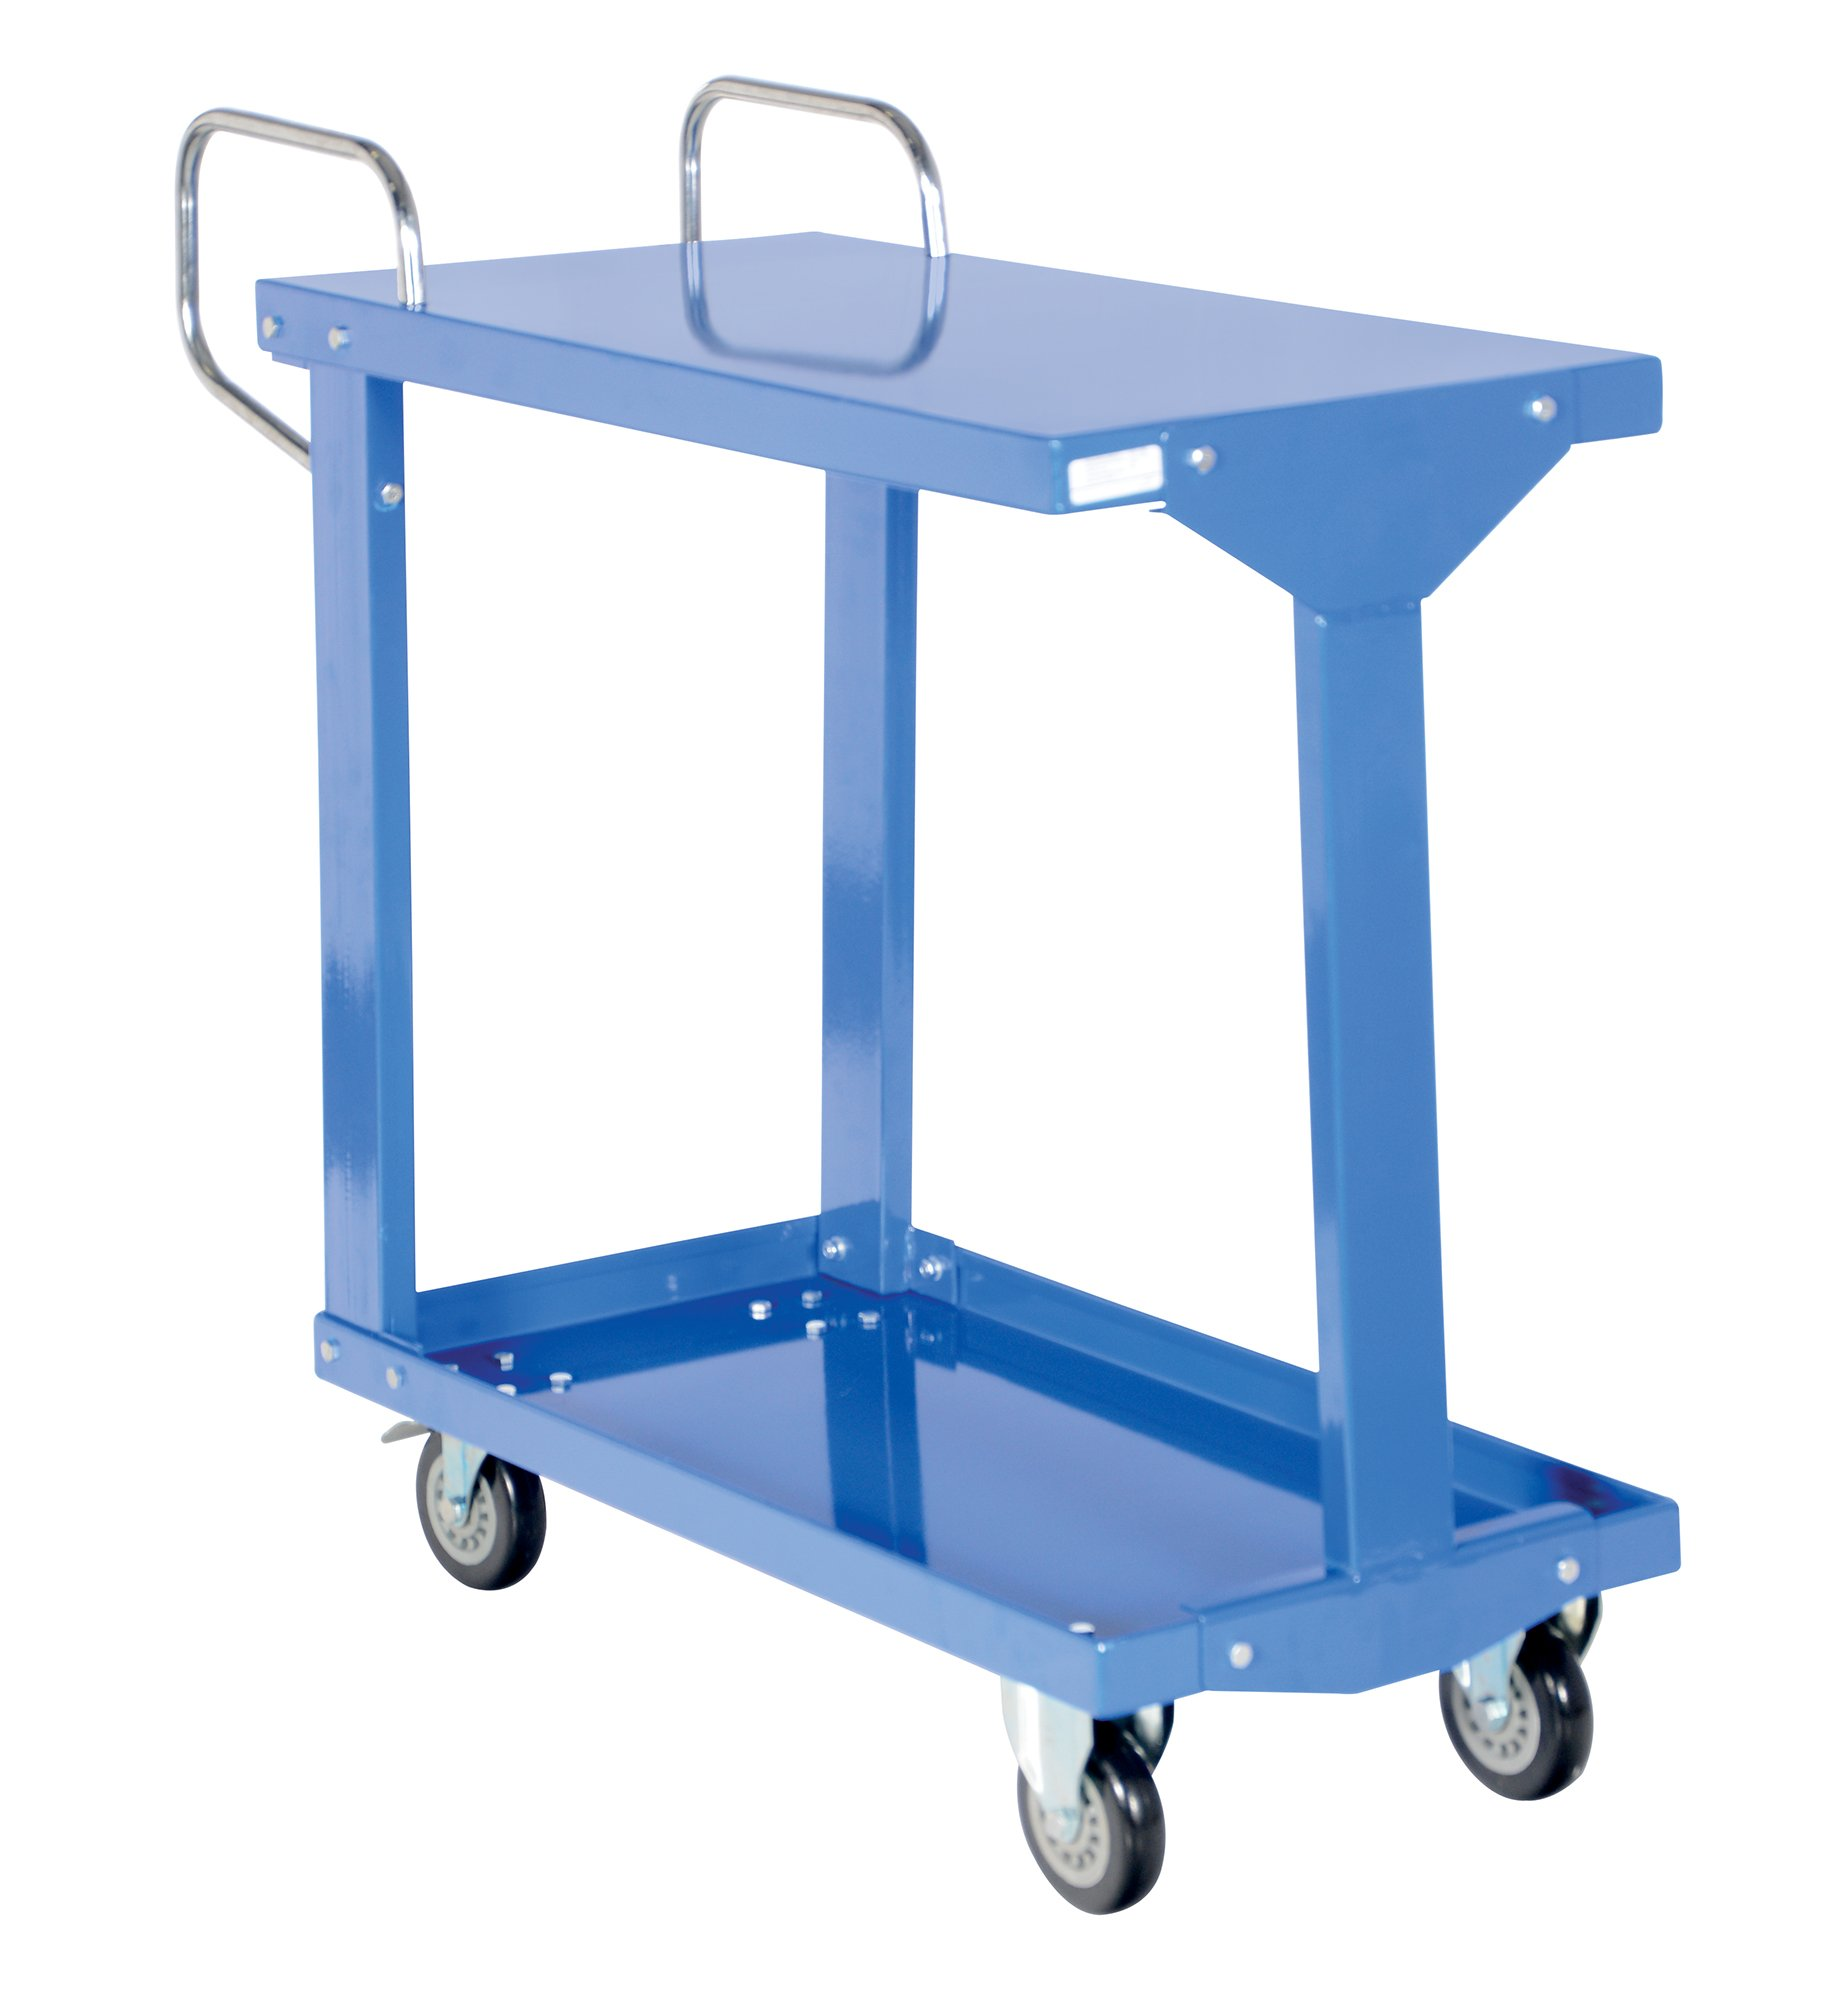 Vestil EASY-A-1836 Easy-Access Steel Stock Truck , 2 Shelves, Blue, 1200 lbs Load Capacity, 36'' Height, 41-1/2'' Length x 18'' Width